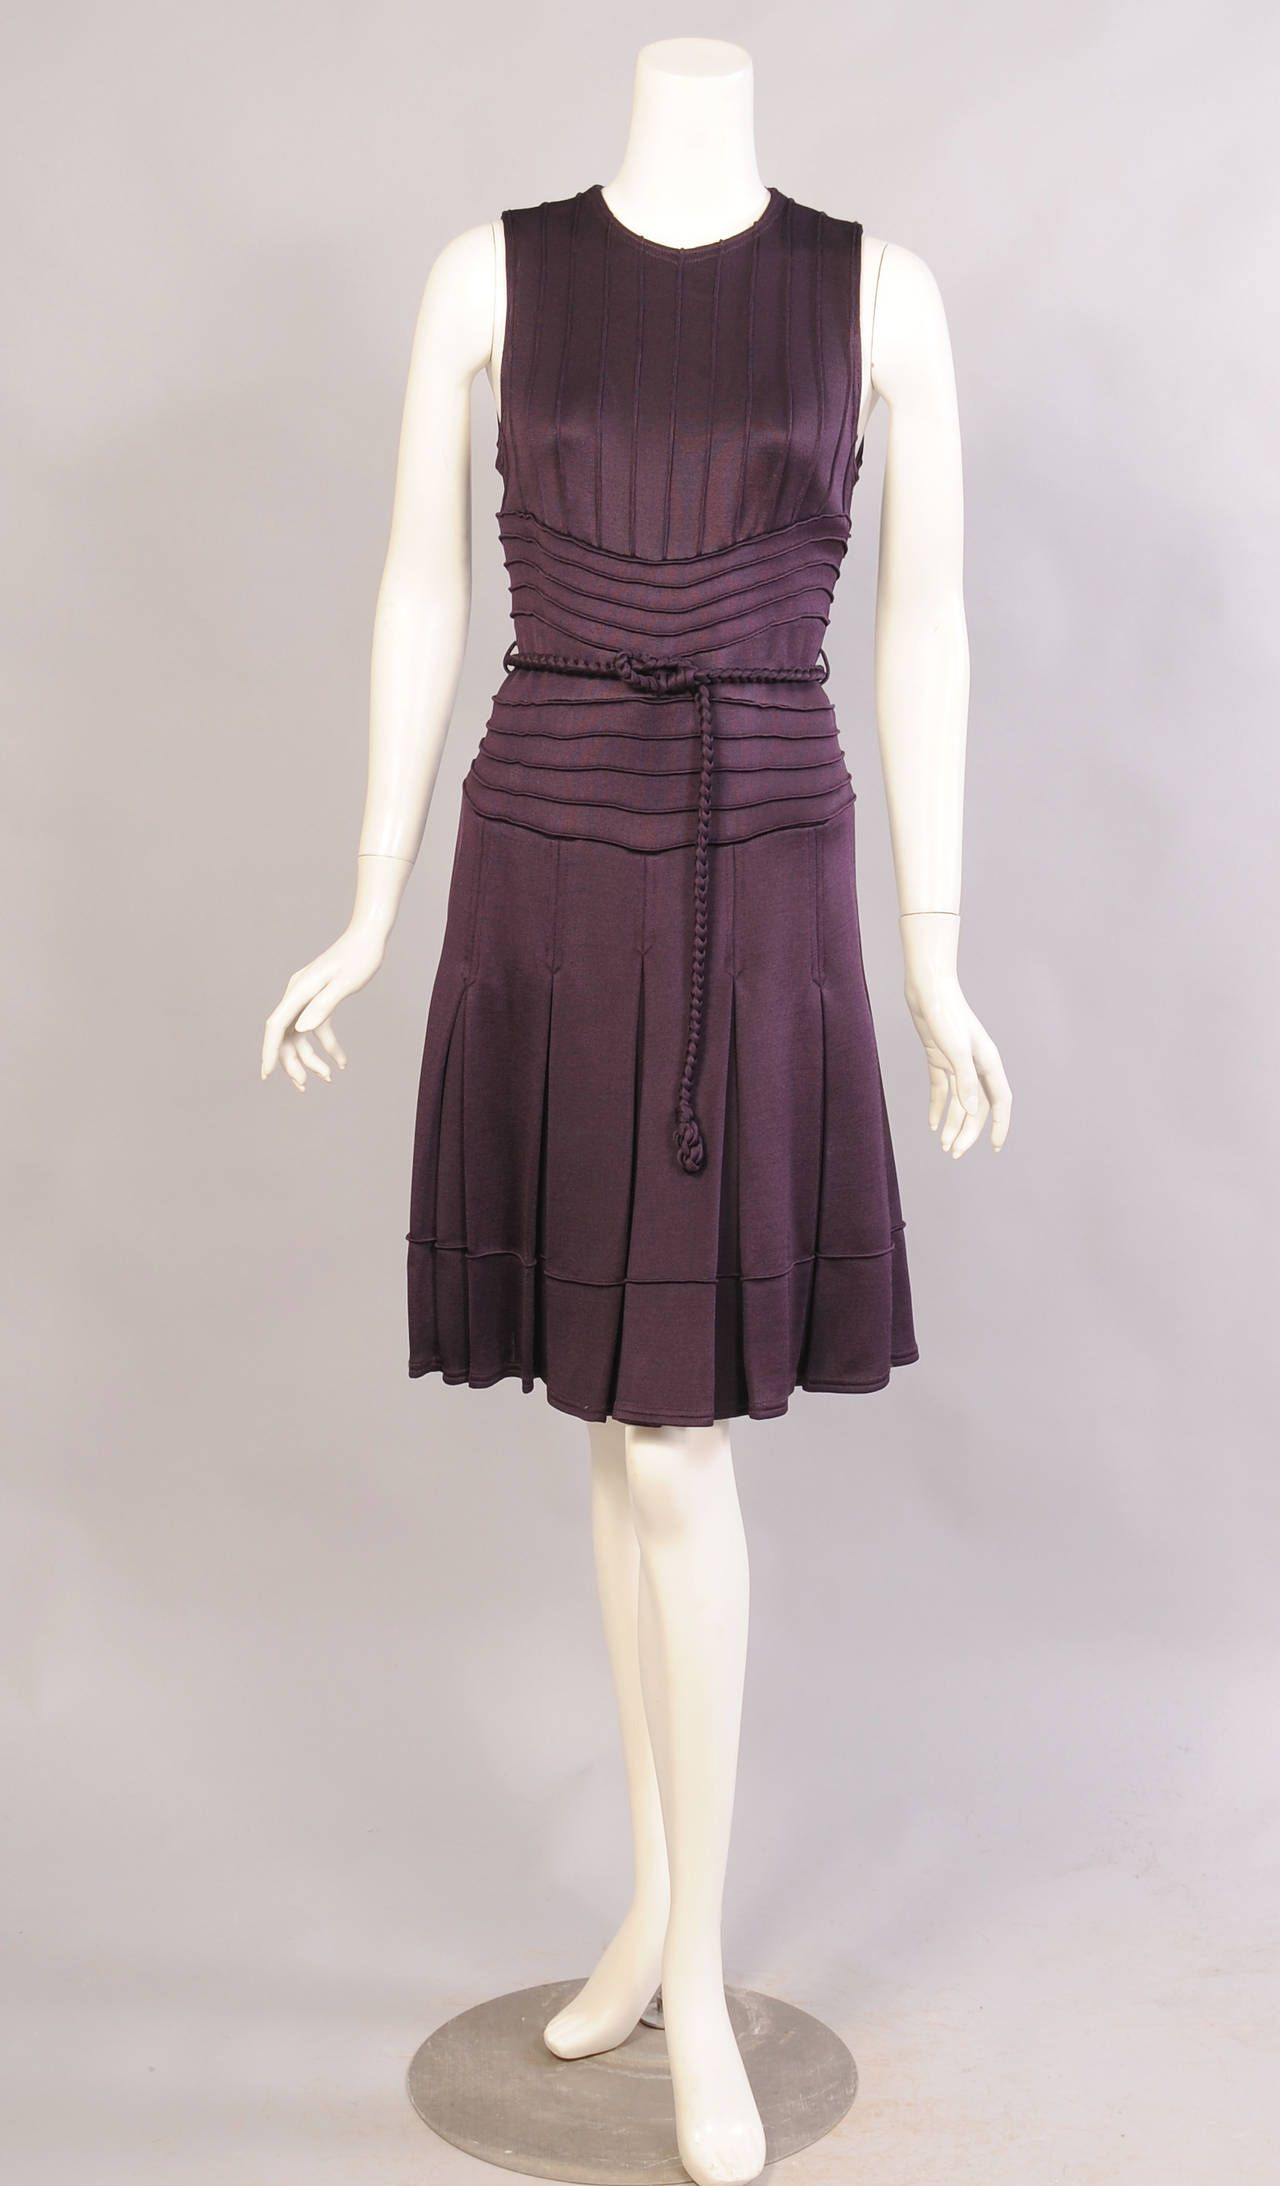 Chado Ralph Rucci Aubergine Pin Tucked Dress Never Worn Size As Marked 8 Us Bust 34 In 86 Cm Waist 28 71 Hip 36